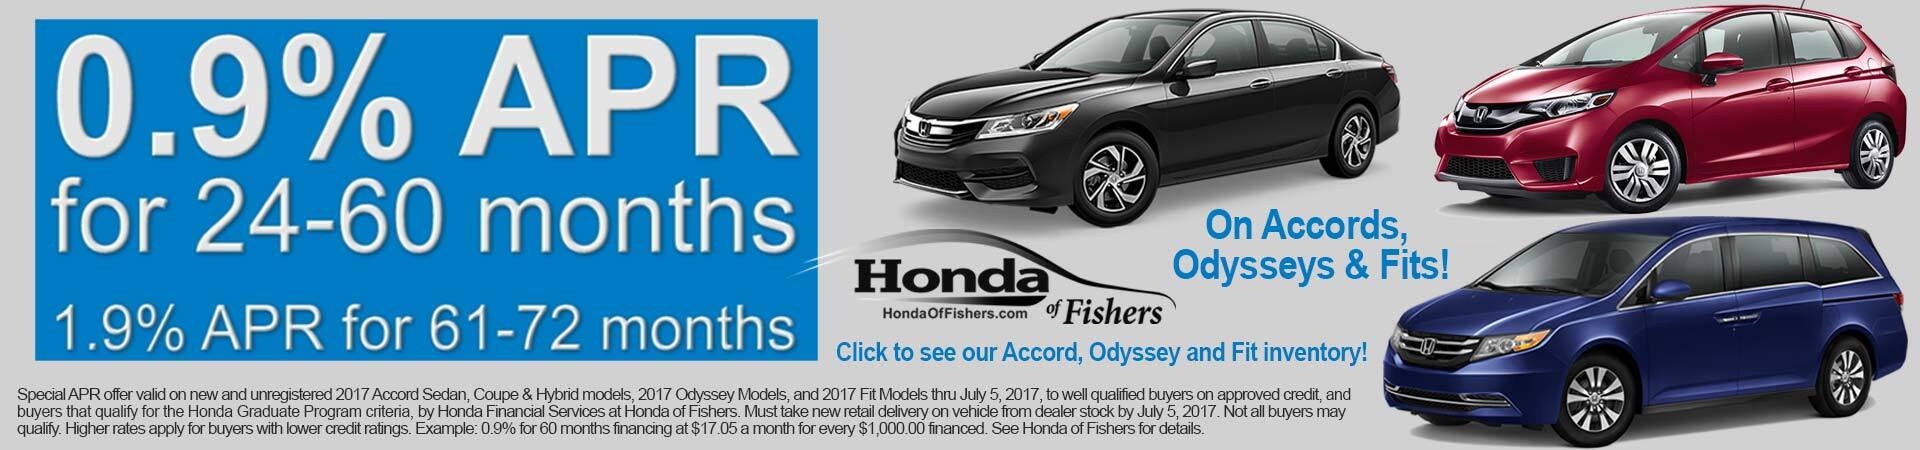 Special APR on Accord Odyssey or Fit